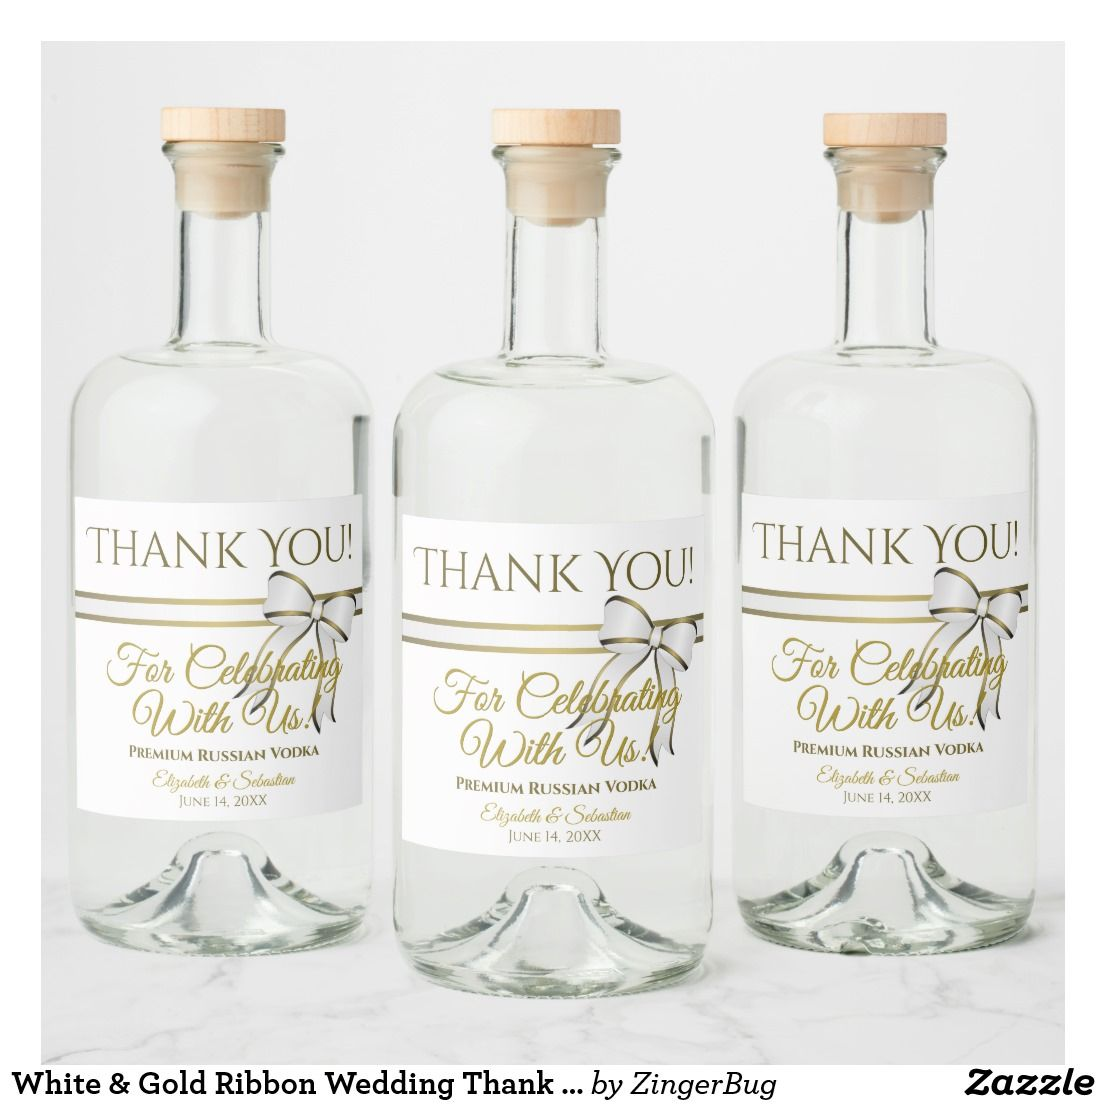 White & Gold Ribbon Wedding Thank You Liquor Bottle Label